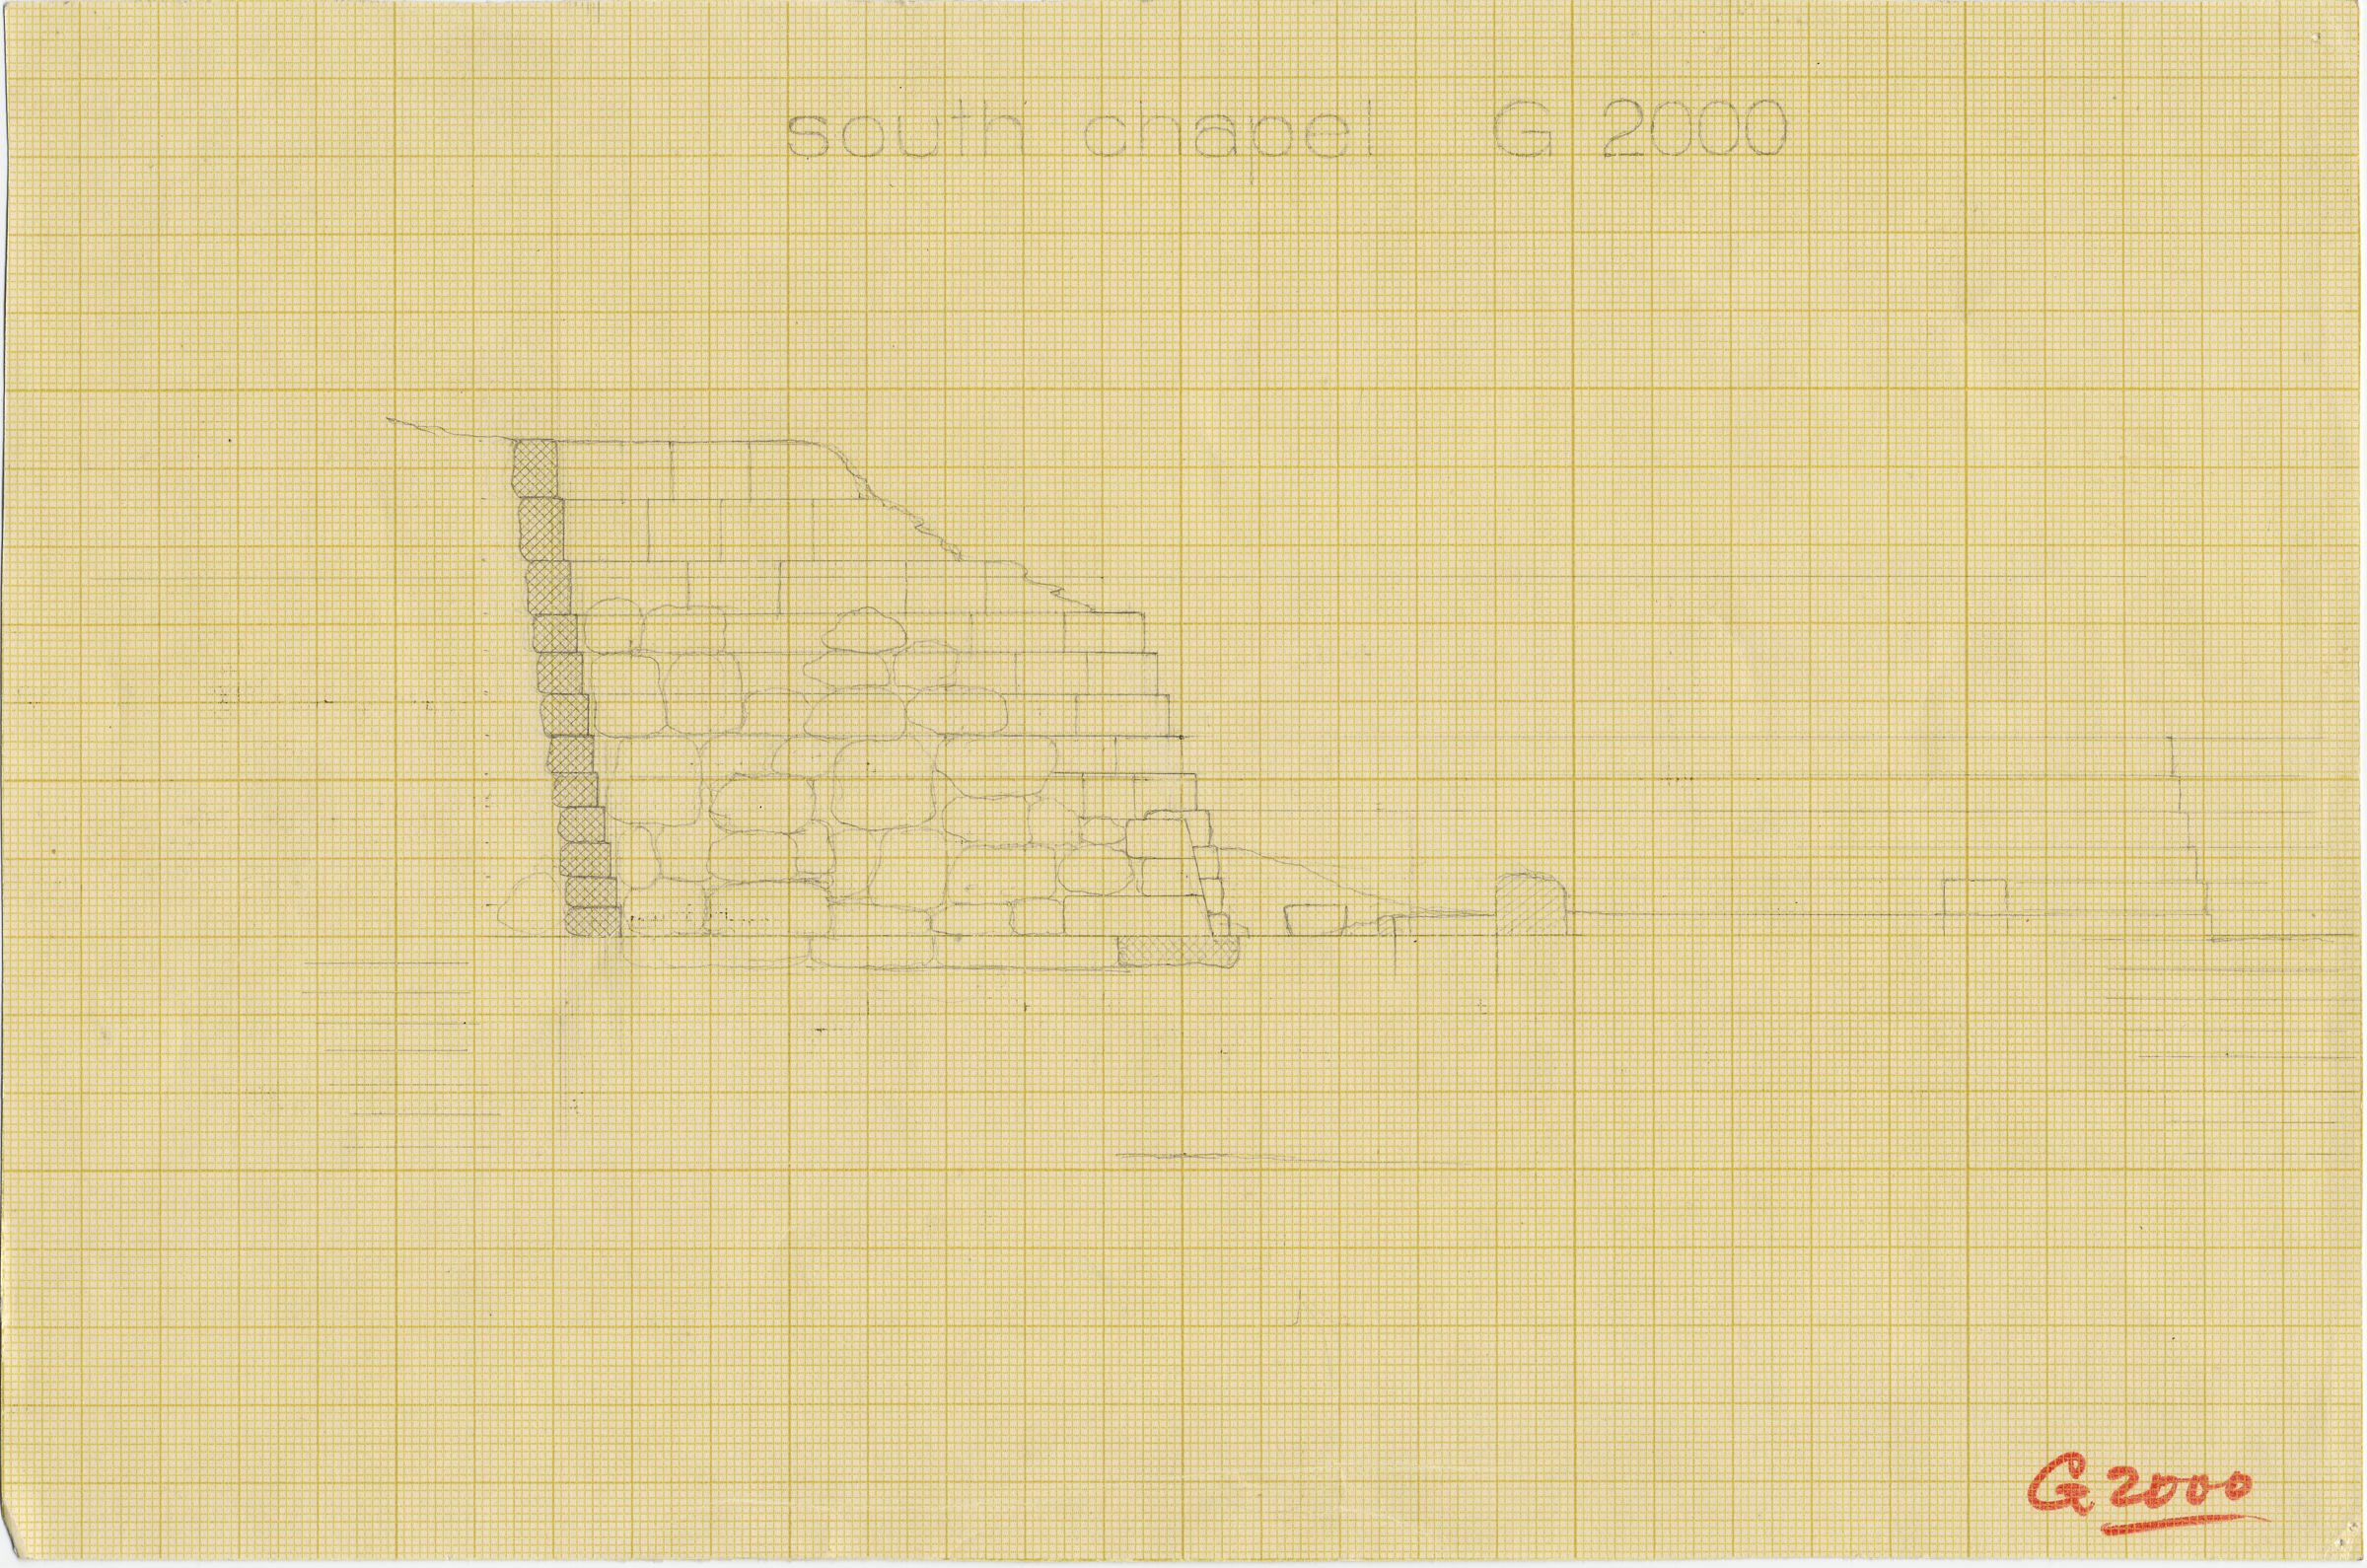 Maps and plans: G 2000 = Lepsius 23, Section of south chapel